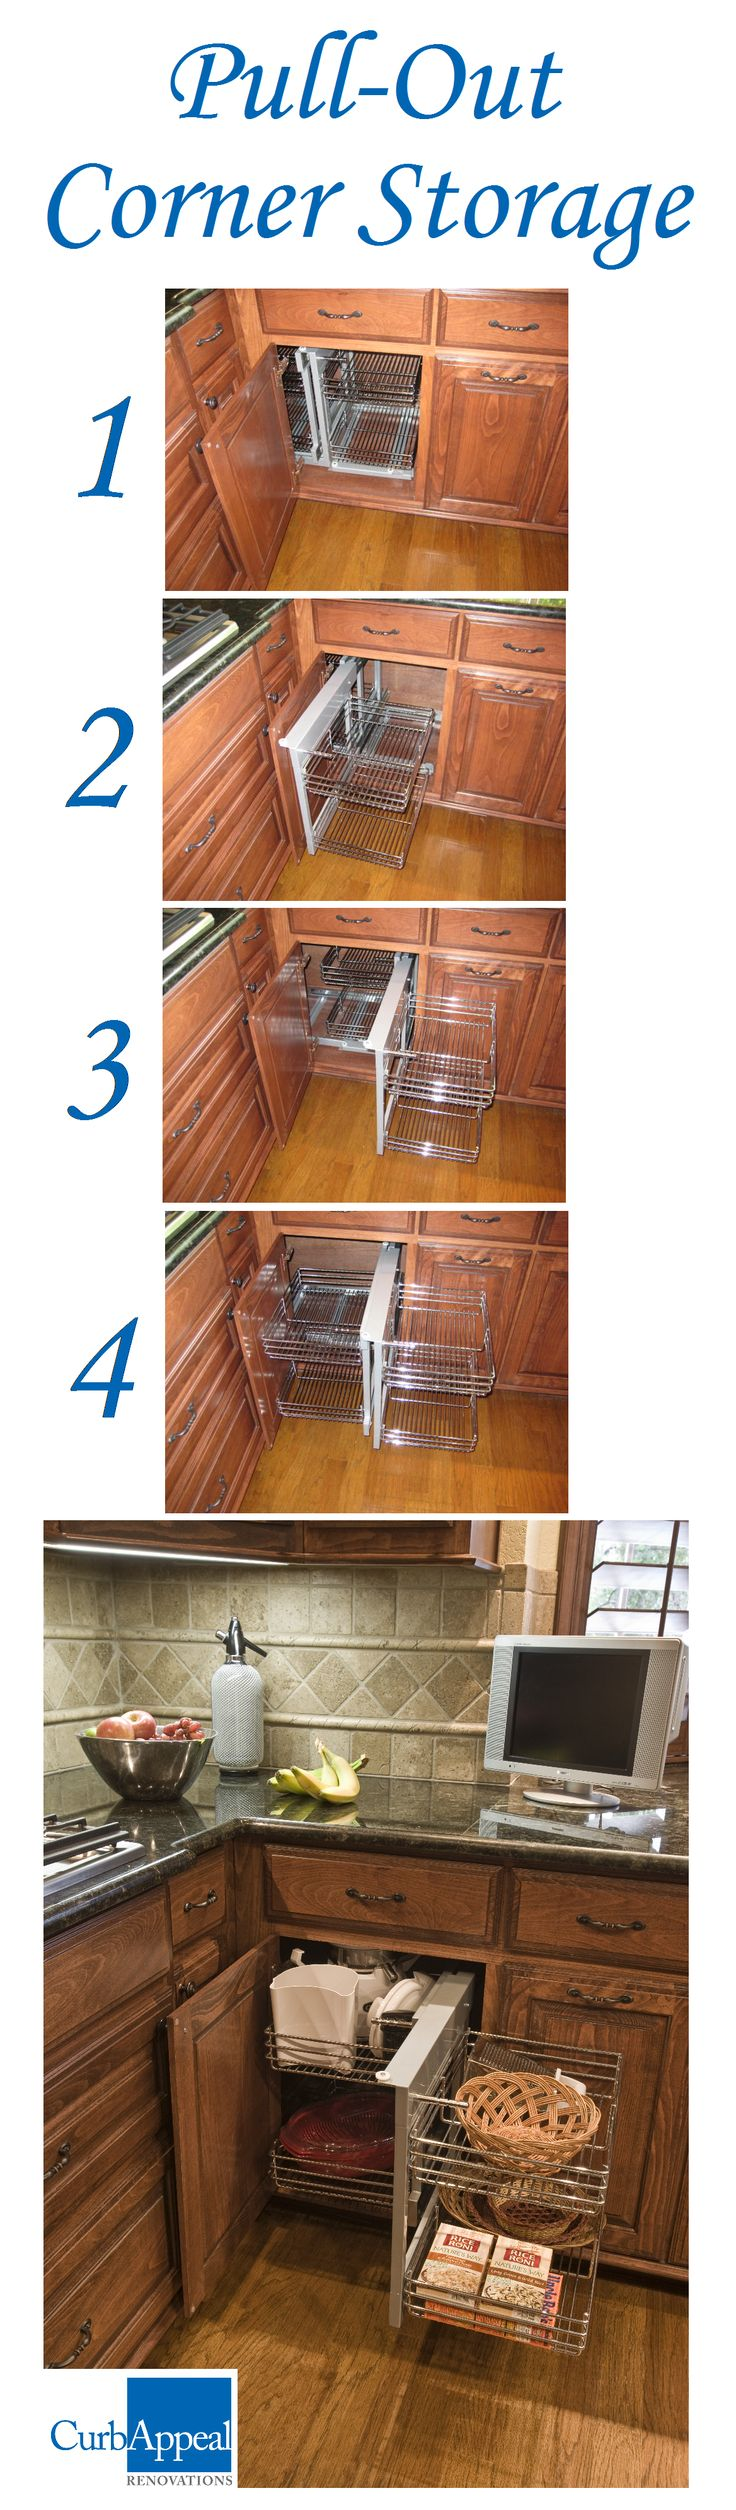 This corner storage shelving unit helps you maximize Maximize kitchen storage